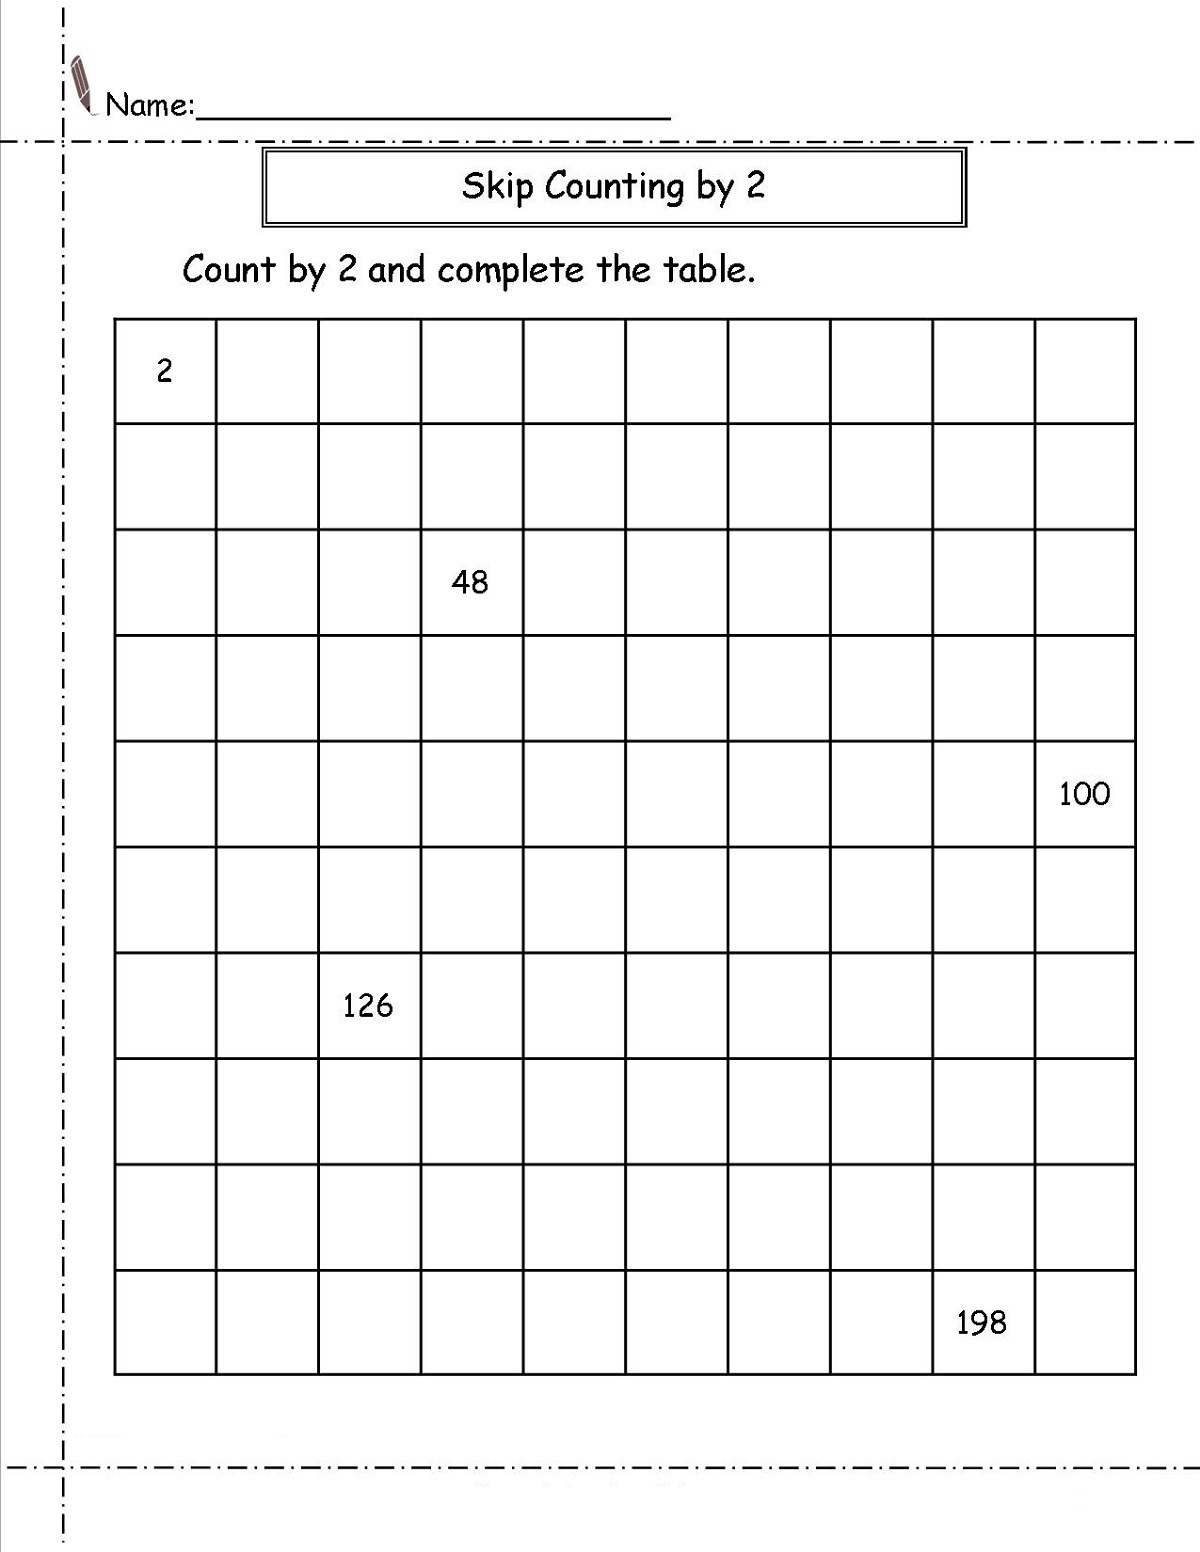 Skip Count By 2 Worksheet Images